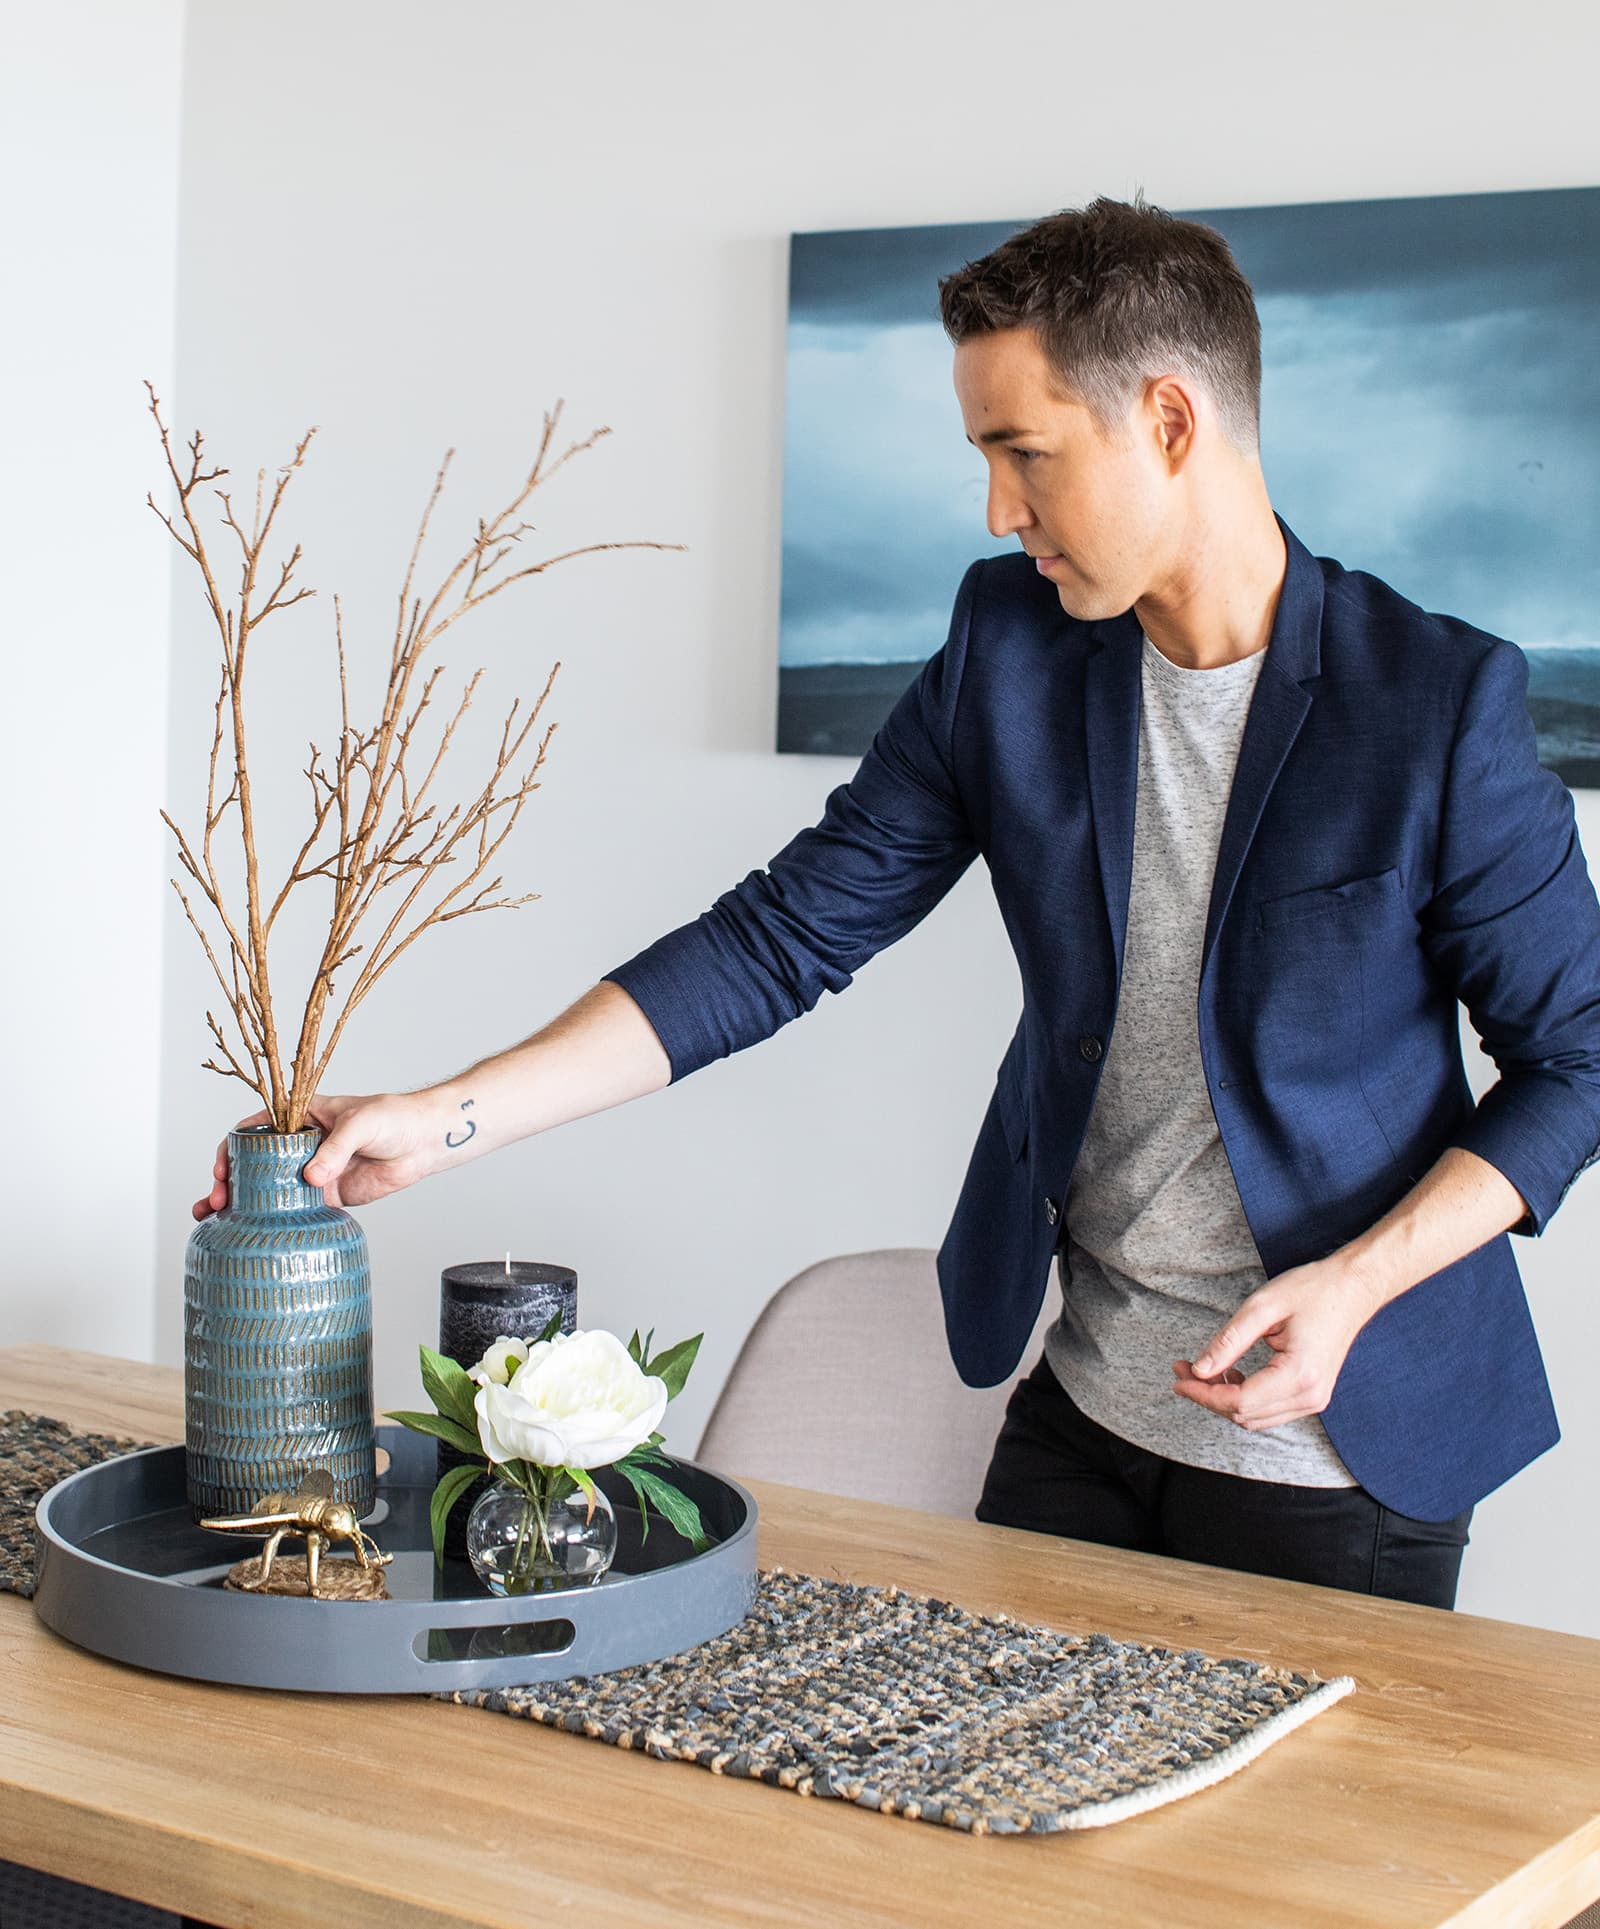 chris carroll tlc interiors dining room table styling